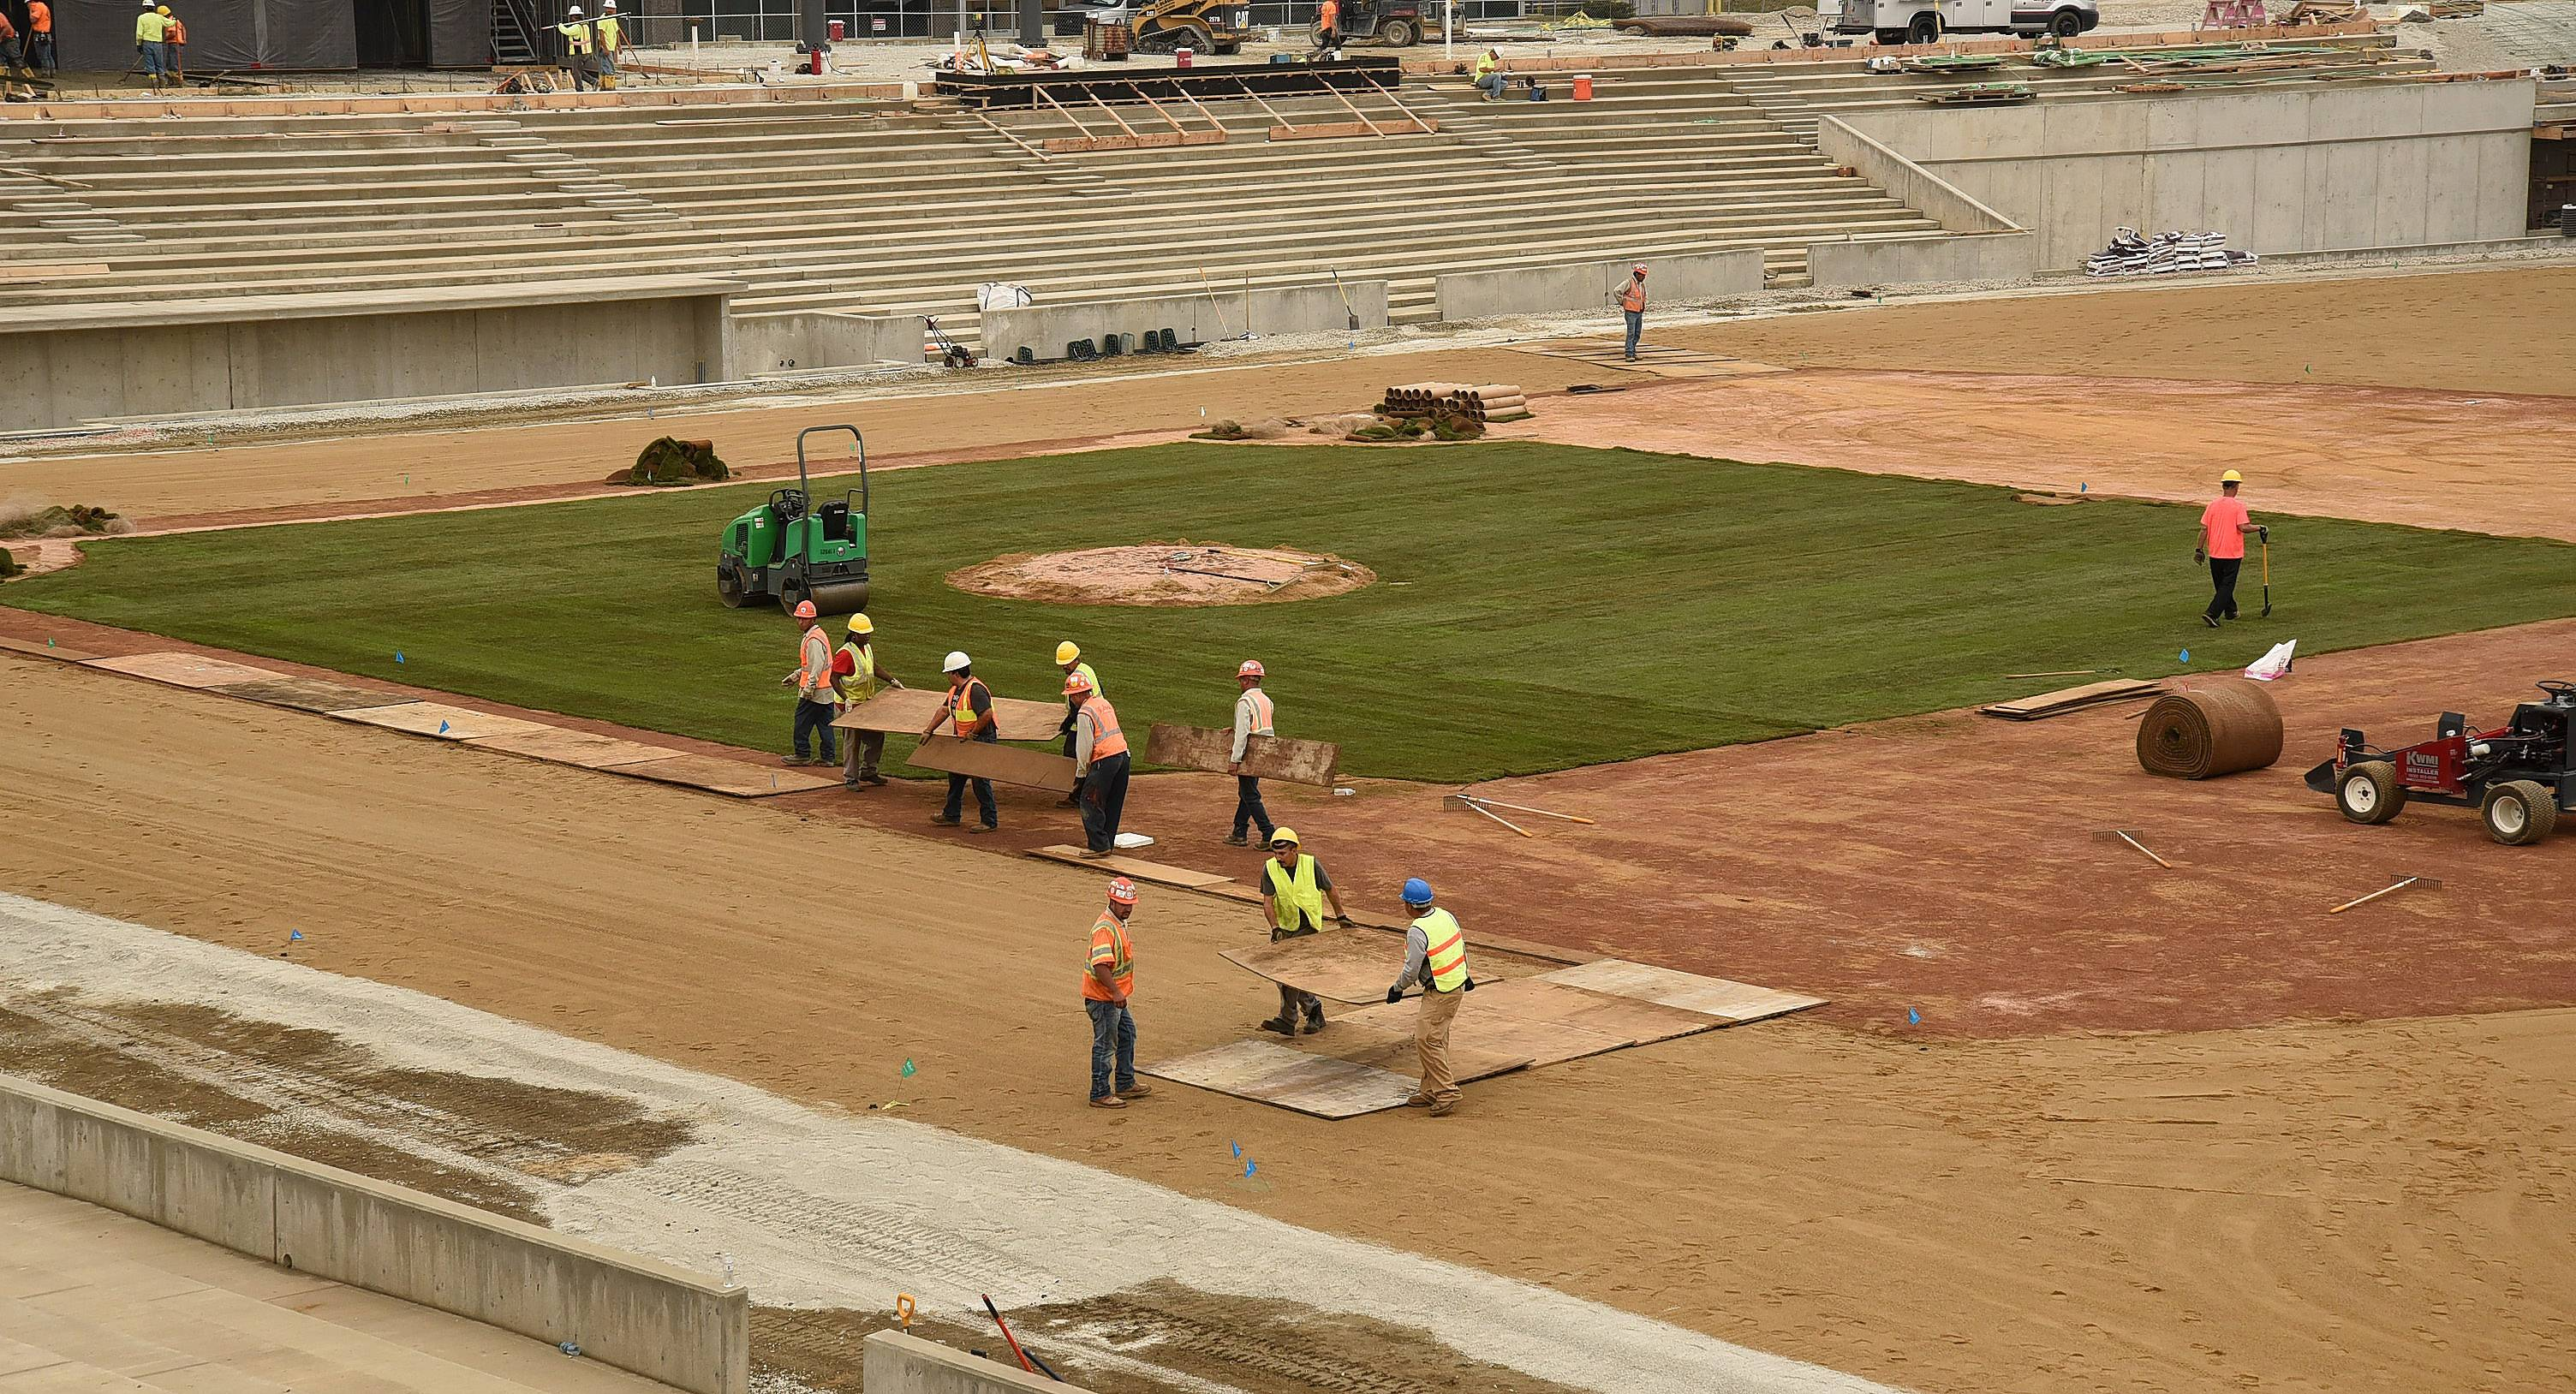 Crews install infield sod Tuesday at Impact Field in Rosemont, a process overseen by Roger Bossard, the head groundskeeper at Guaranteed Rate Field.